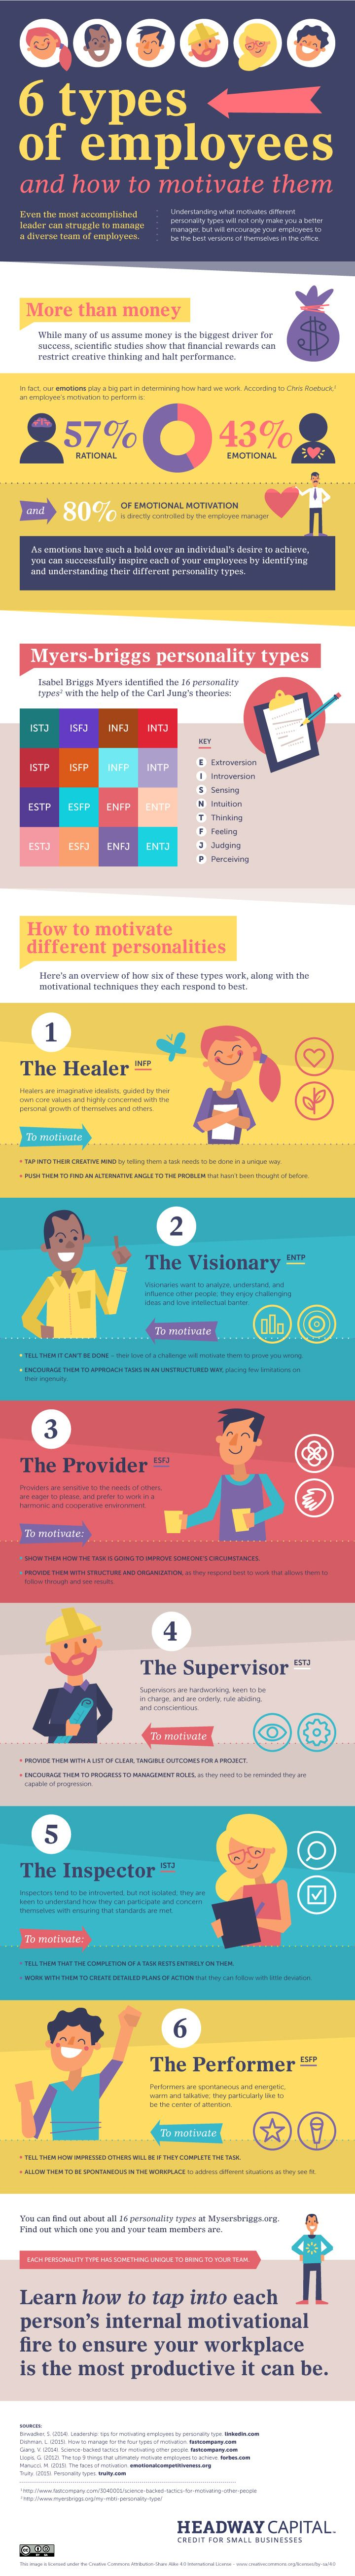 Lavoro Bologna  #lavoro #Bologna #lavoroBologna #bakecalavoro 6 types of employees and how to motivate them (Infographic)